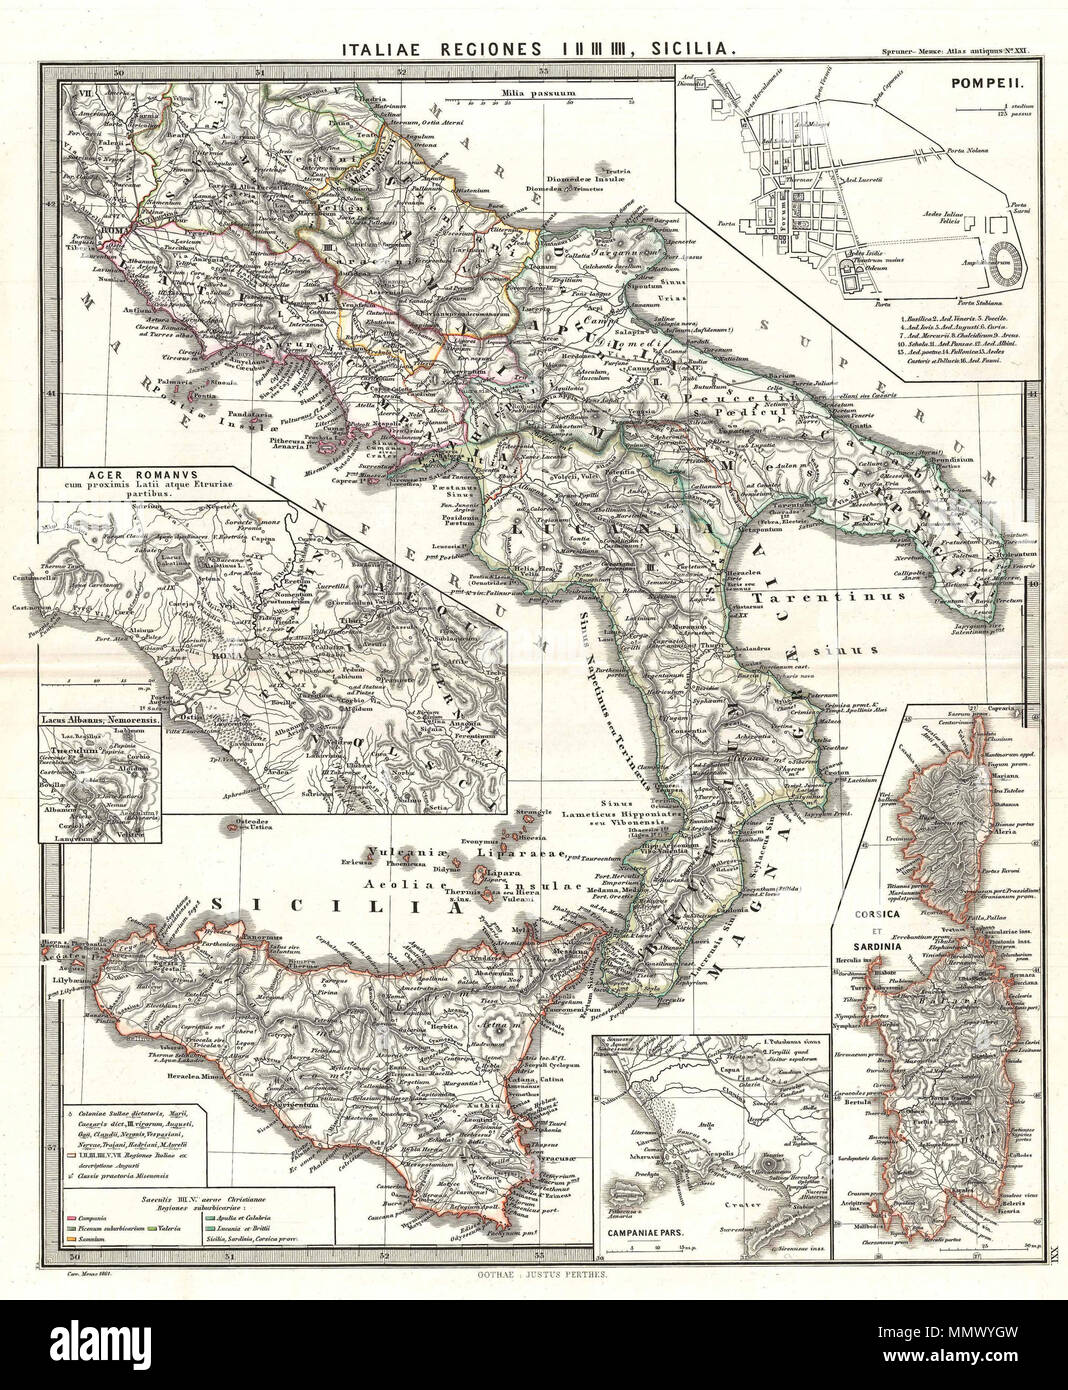 Map Of Southern Italy Regions.English A Particularly Interesting Map This Is Karl Von Spruner S